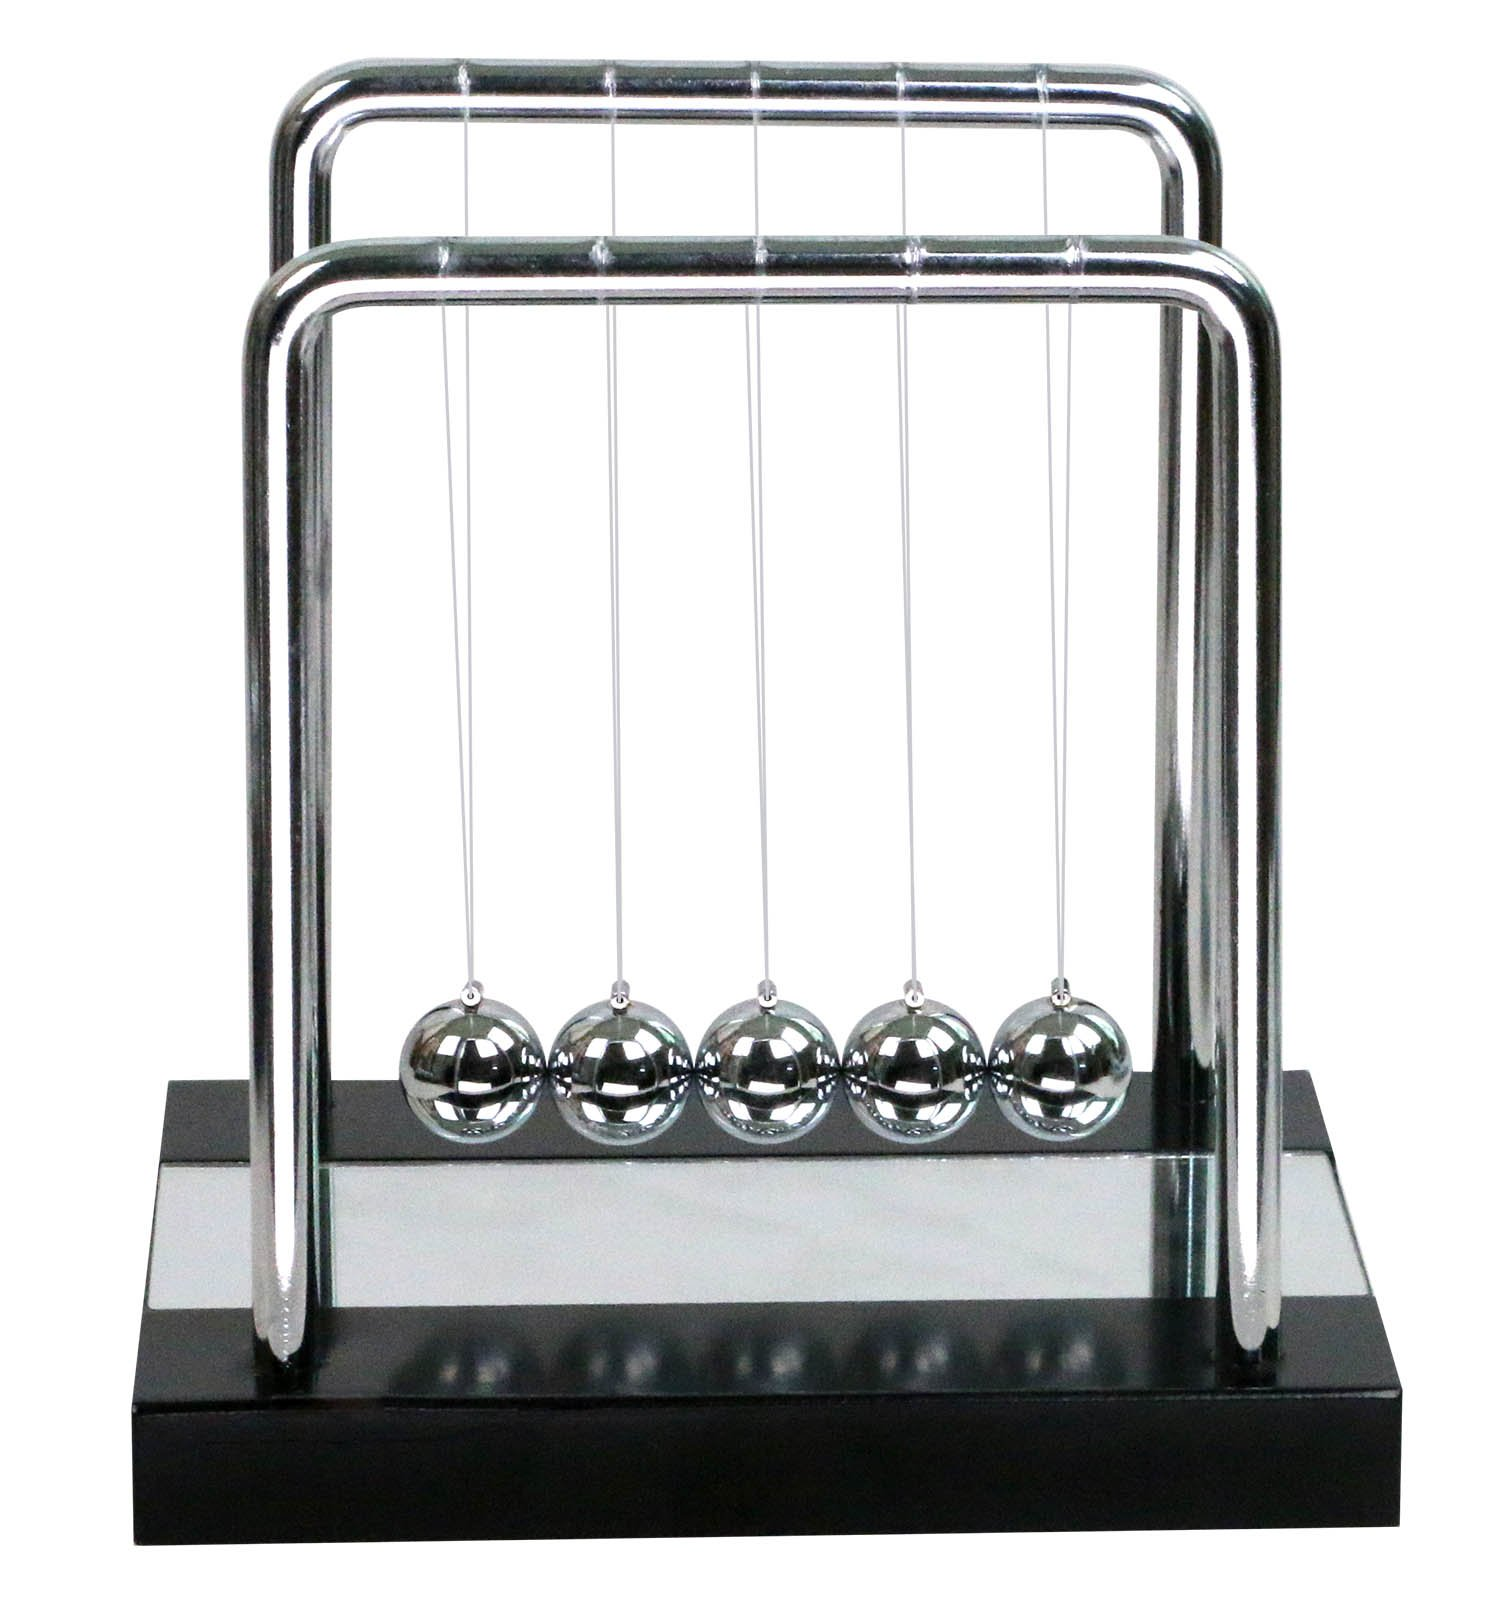 BOJIN Mirror Newton's Cradle Balance Ball Science Kinetic Energy Sculpture - Medium Mirror by BOJIN (Image #2)